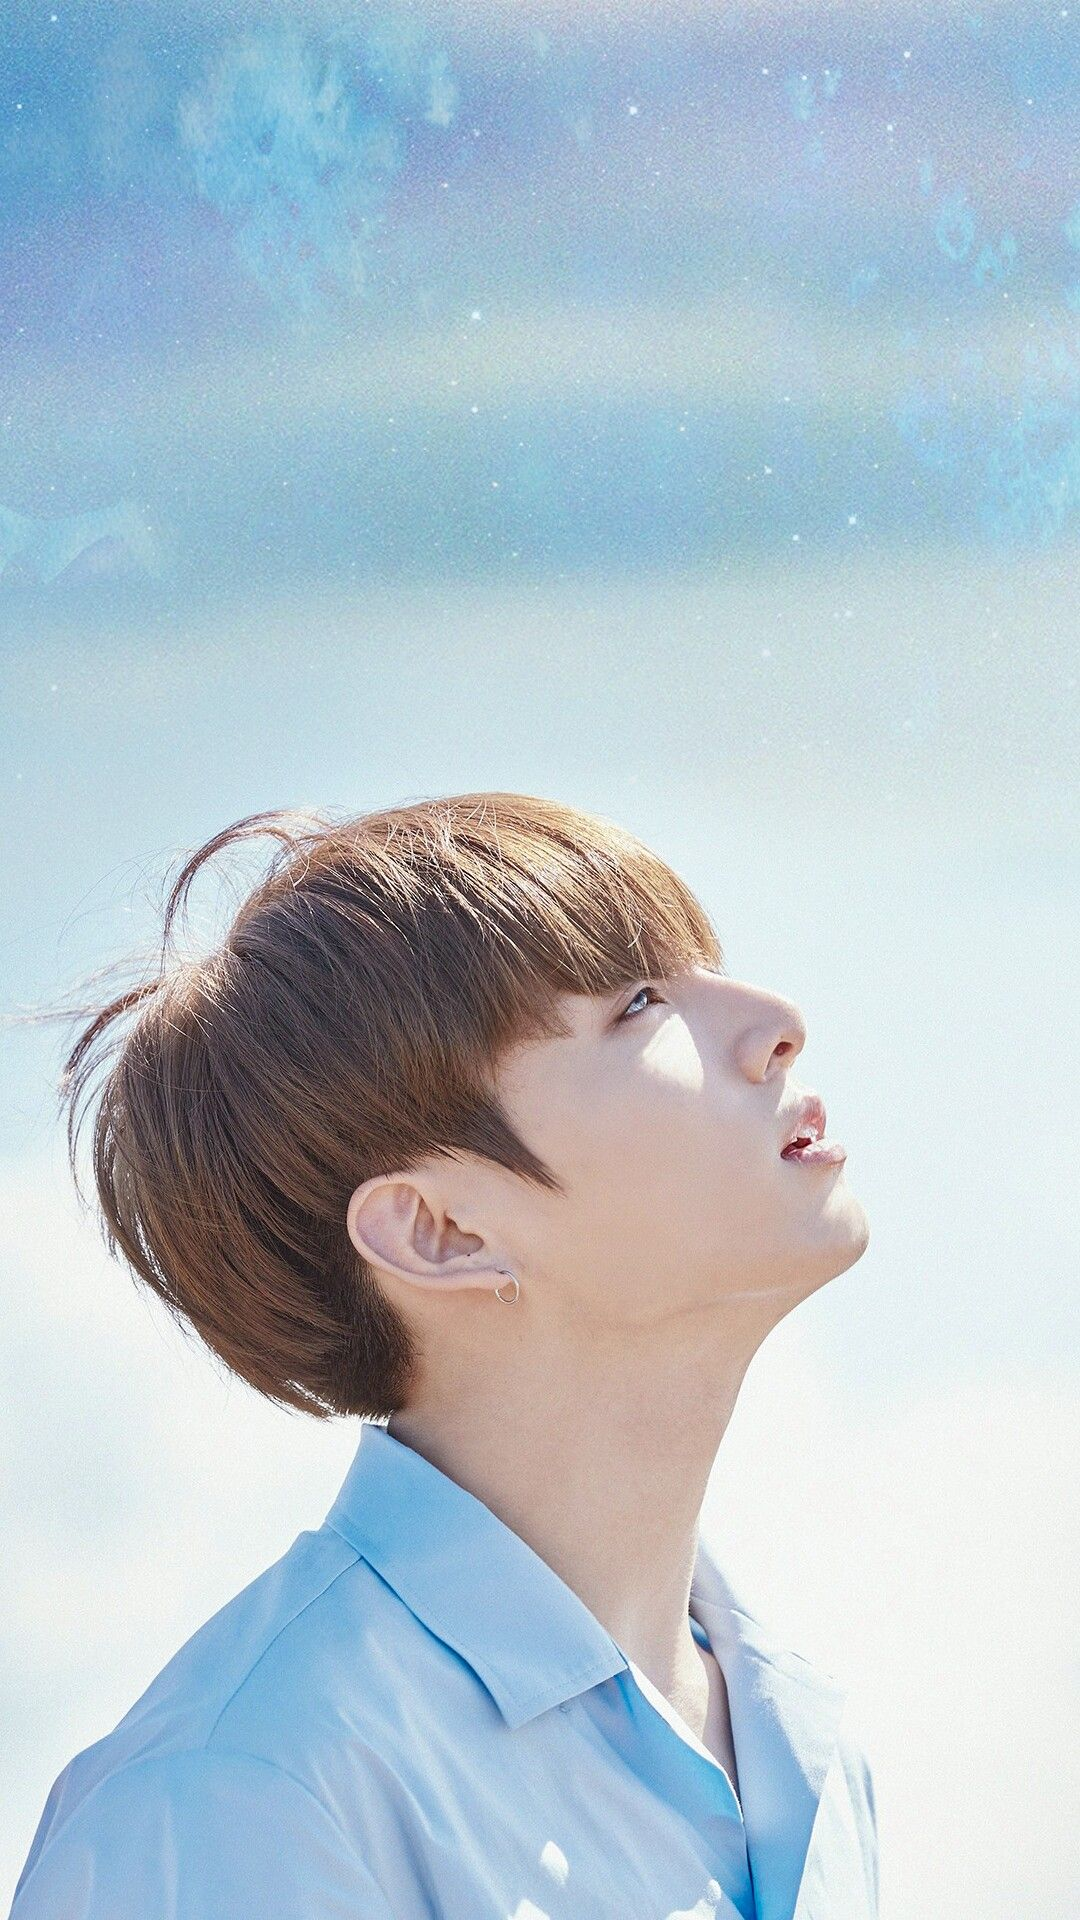 Jungkook wallpaper BTS 2018 Seasons greetings BTS di 2019 1080x1920